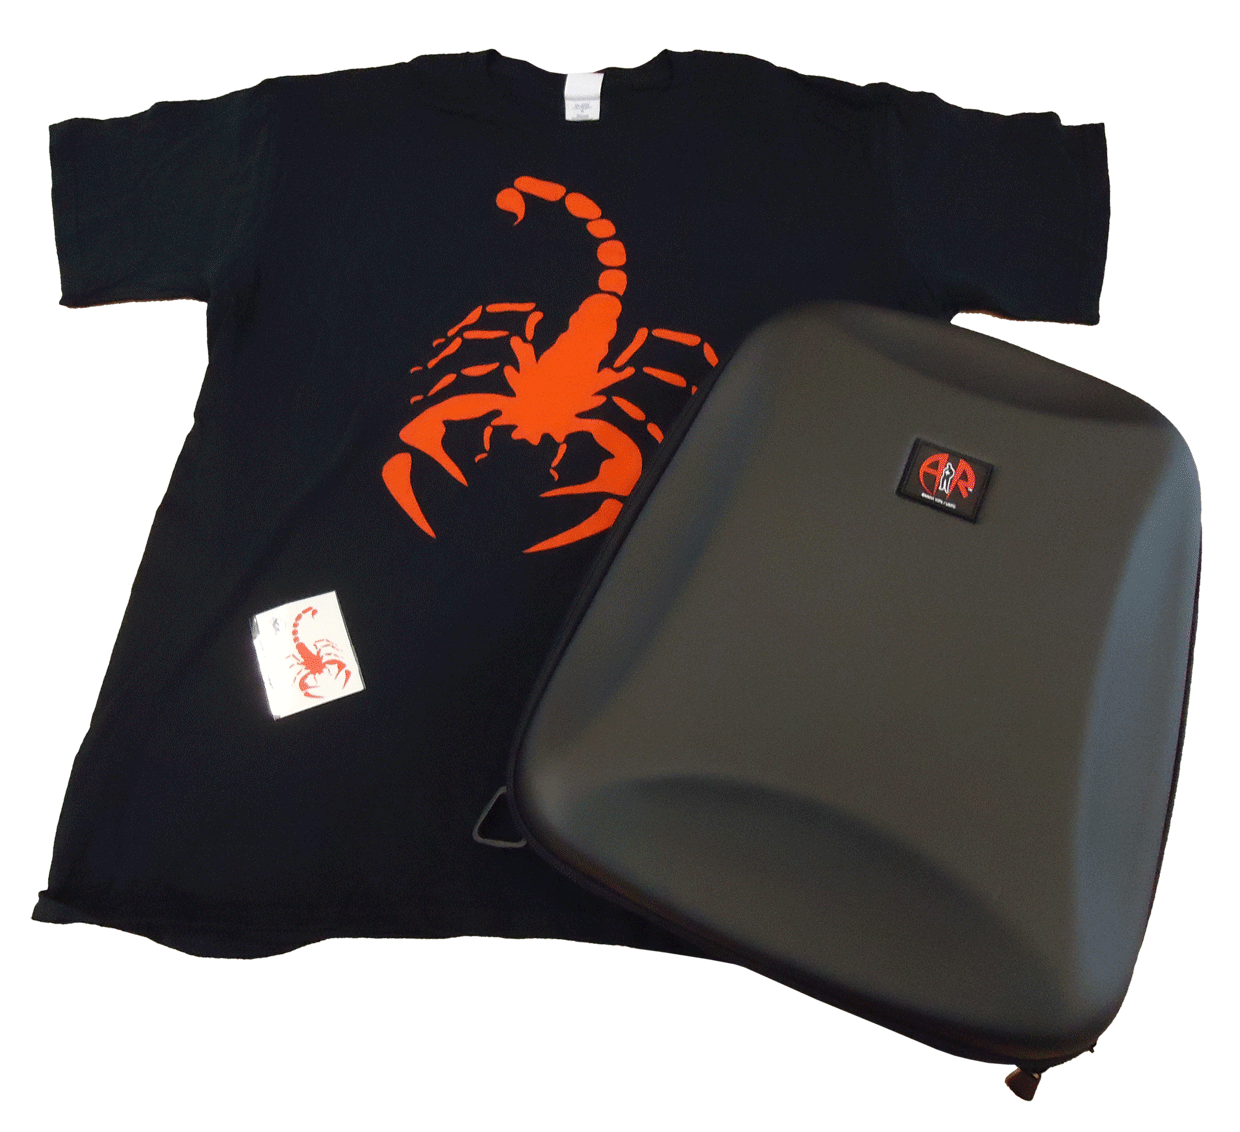 Alex Rider Backpack and Tshirt